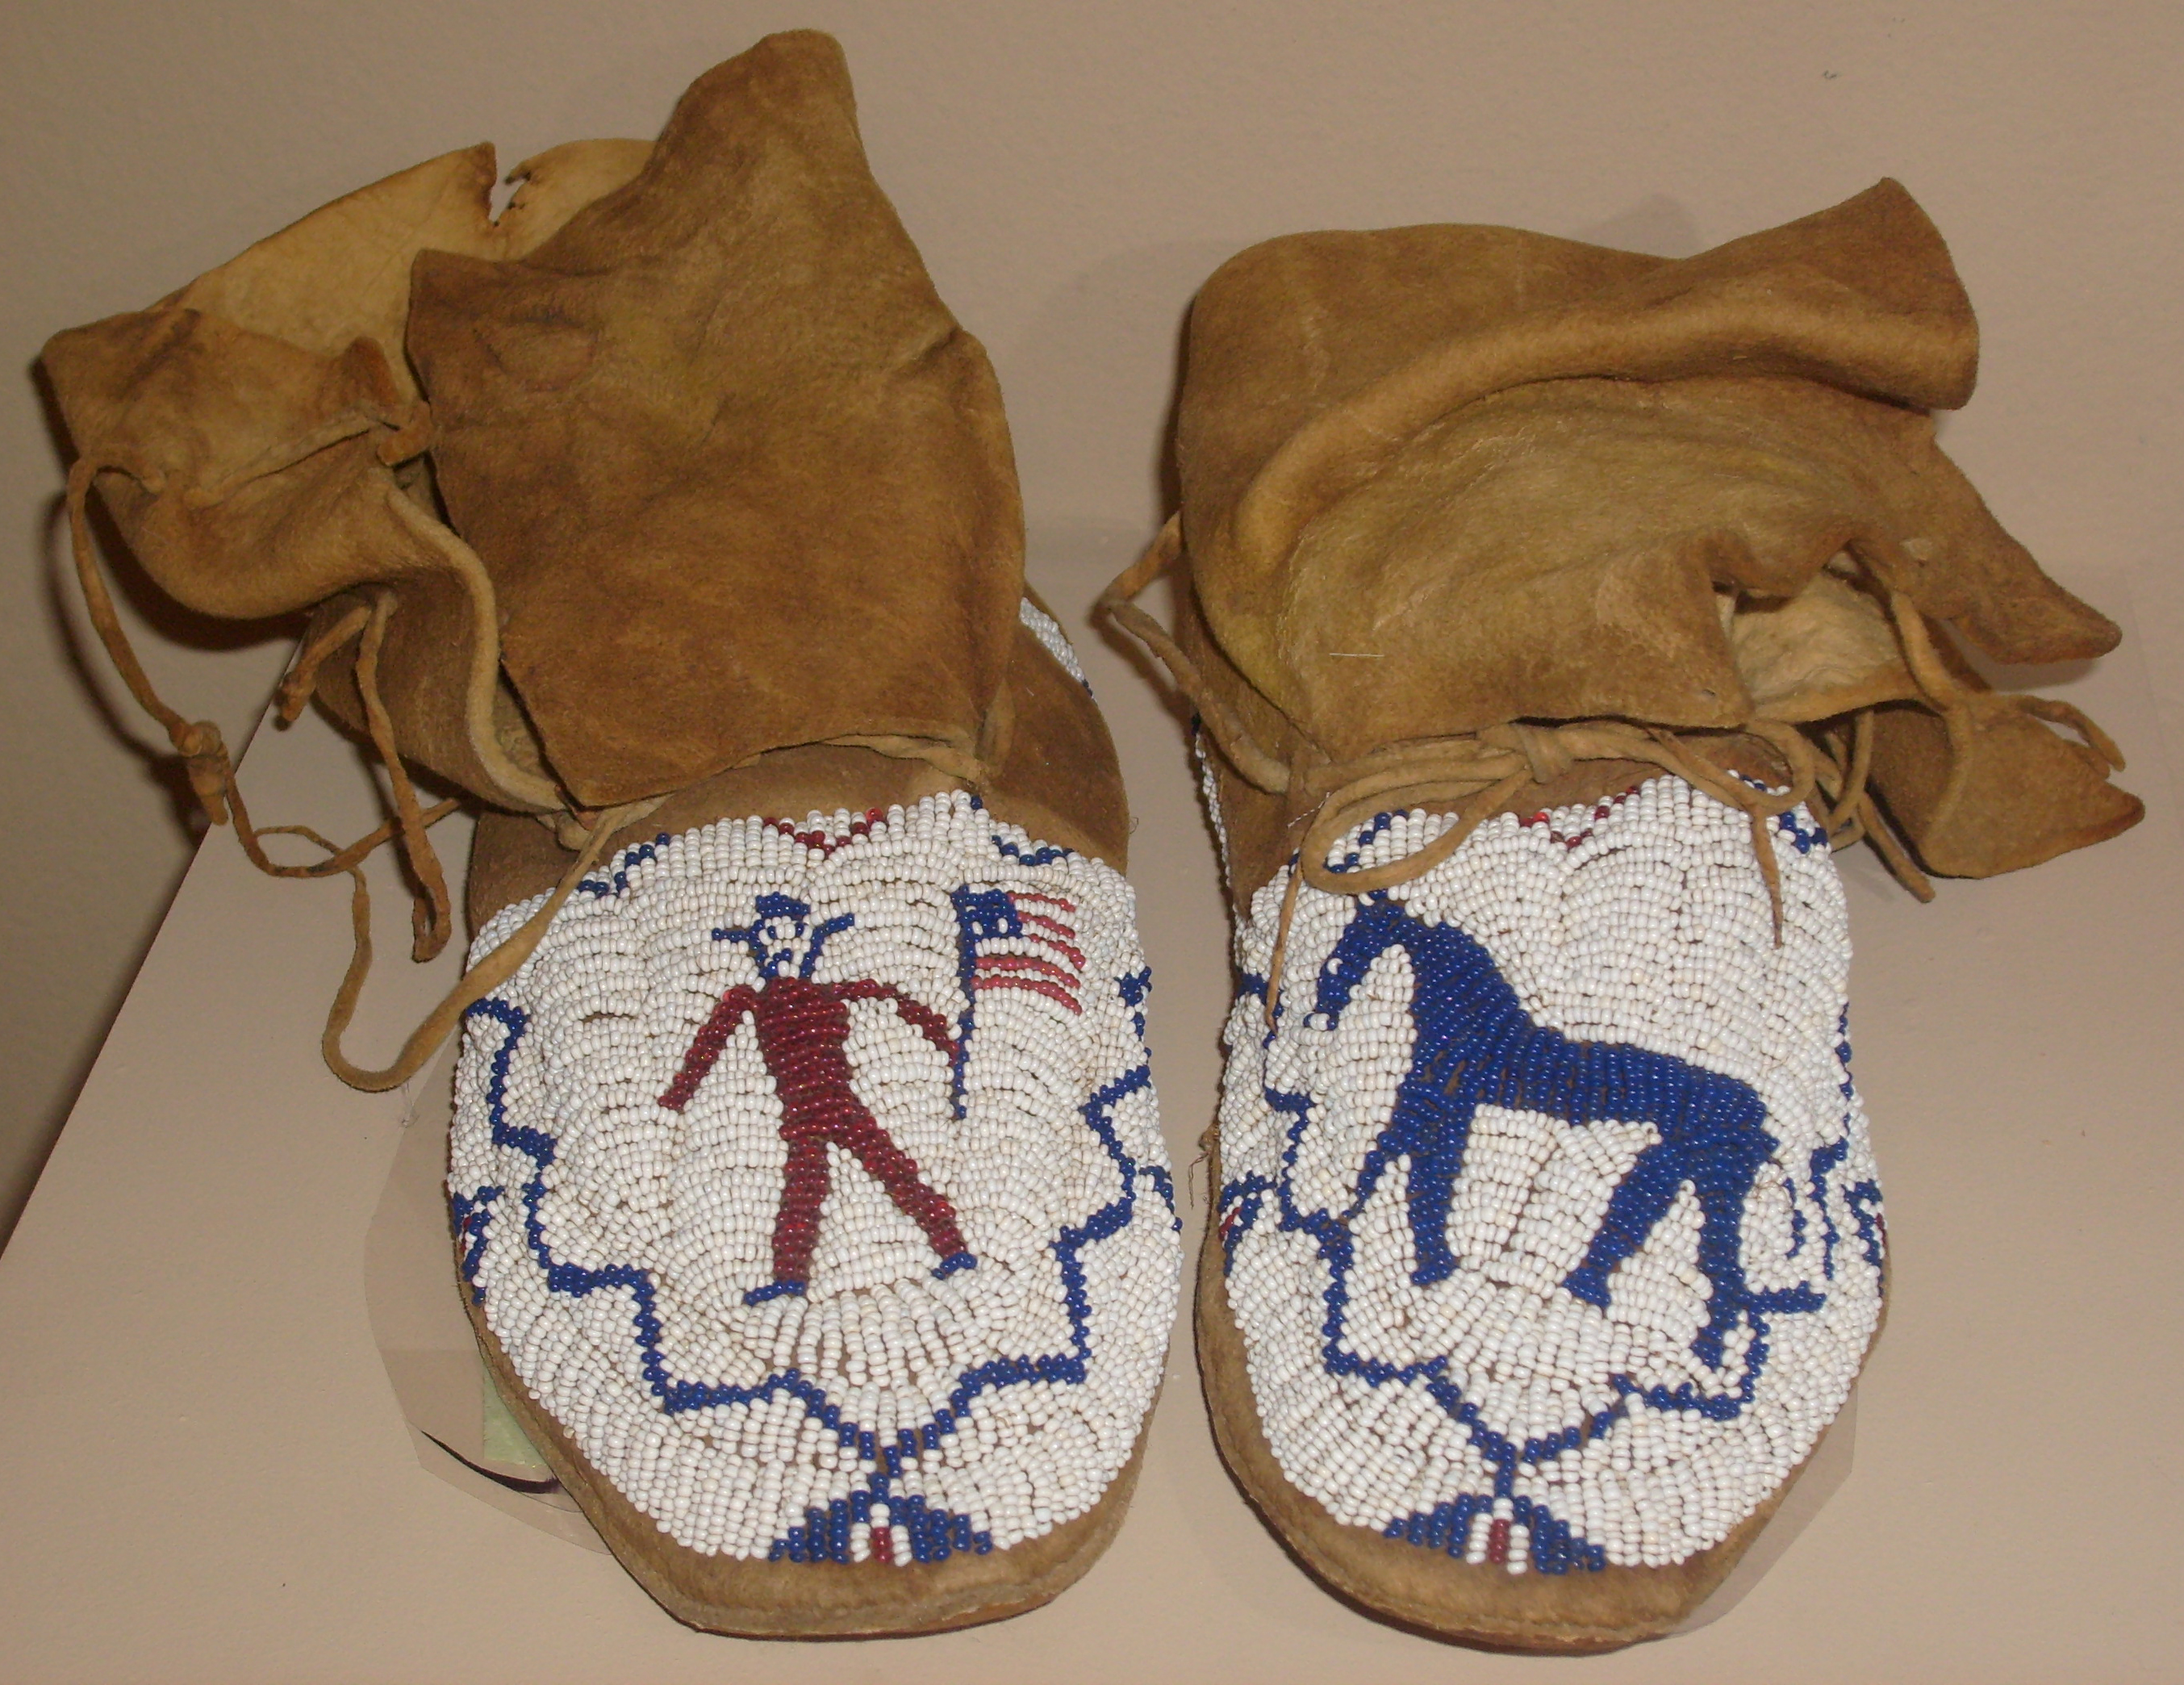 moccasin definition what is